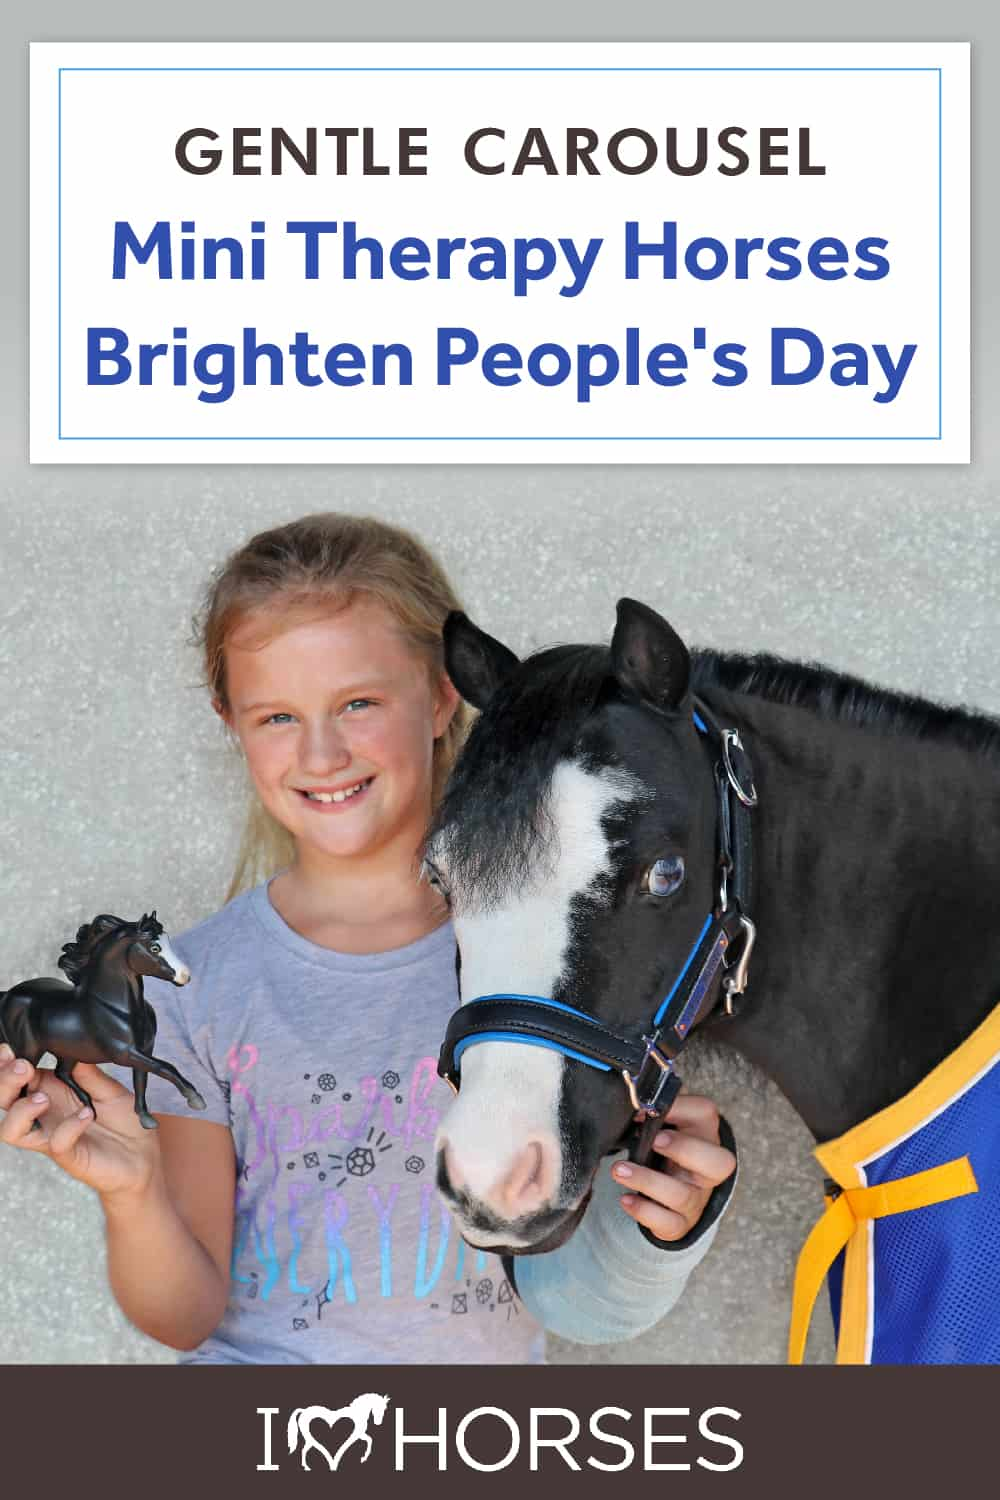 All About Gentle Carousel Mini Therapy Horses